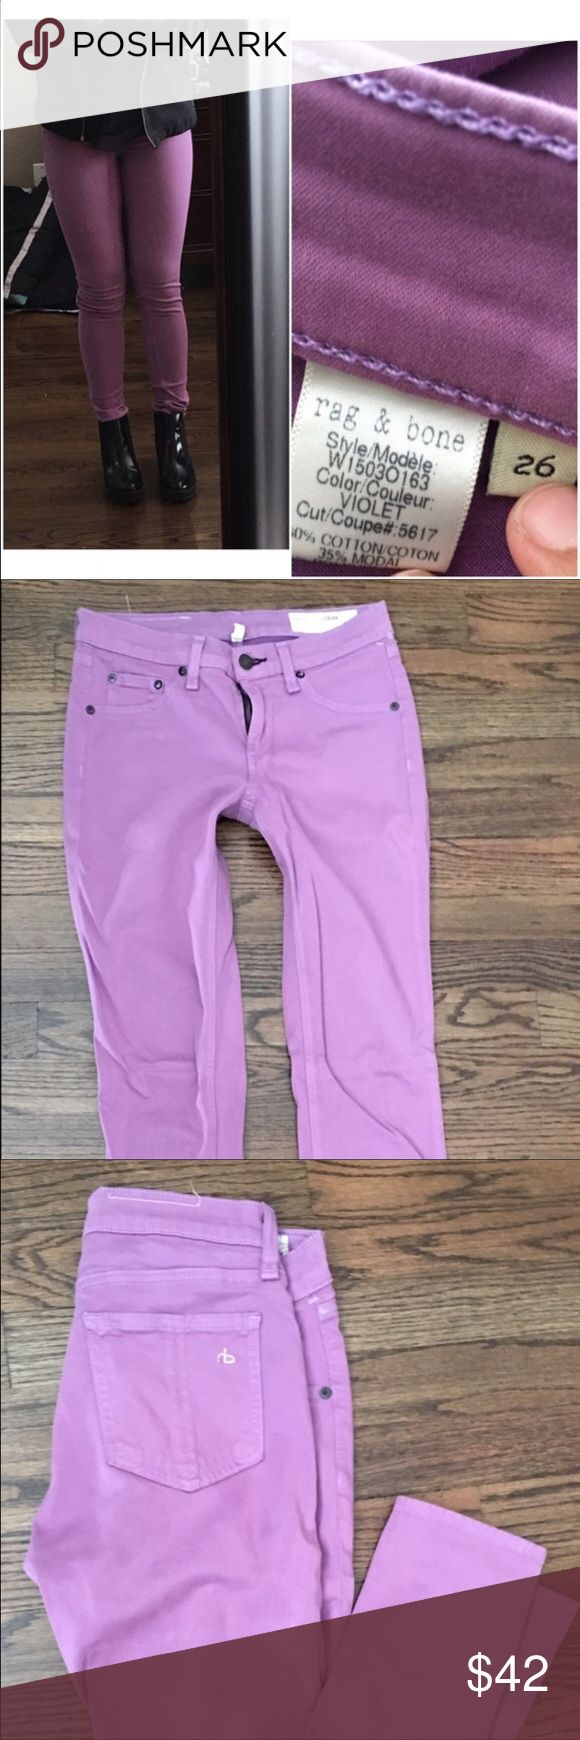 Rag and bone purple skinny jeans Great lavender jean. Great condition Great color Great price!!! Look at my closet for bundle deals :) 20% off 3 items rag & bone Jeans Skinny